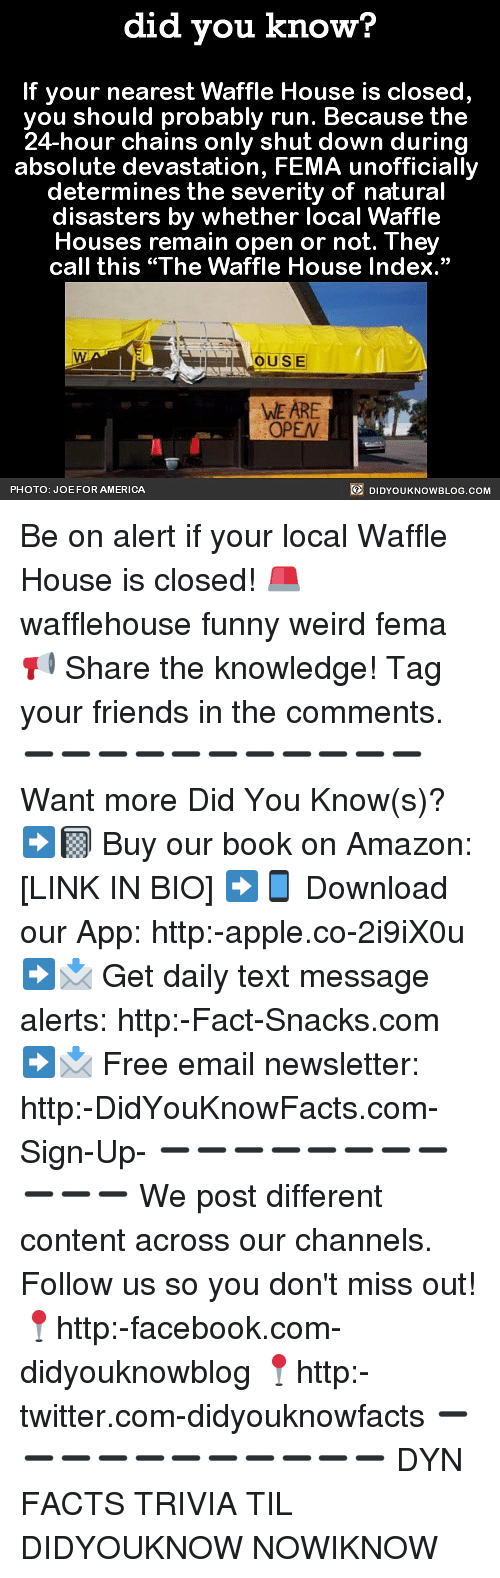 """Amazon, America, and Apple: did you know?  If your nearest Waffle House is closed  you should probably run. Because the  24-hour chains only shut down during  absolute devastation, FEMA unofficially  determines the severity of natural  disasters by whether local Waffle  Houses remain open or not. They  call this """"The Waffle House Index.""""  OUSE  WE ARE  OPEN  PHOTO: JOE FOR AMERICA  DIDYOUKNOWBLOG.COM Be on alert if your local Waffle House is closed! 🚨 wafflehouse funny weird fema 📢 Share the knowledge! Tag your friends in the comments. ➖➖➖➖➖➖➖➖➖➖➖ Want more Did You Know(s)? ➡📓 Buy our book on Amazon: [LINK IN BIO] ➡📱 Download our App: http:-apple.co-2i9iX0u ➡📩 Get daily text message alerts: http:-Fact-Snacks.com ➡📩 Free email newsletter: http:-DidYouKnowFacts.com-Sign-Up- ➖➖➖➖➖➖➖➖➖➖➖ We post different content across our channels. Follow us so you don't miss out! 📍http:-facebook.com-didyouknowblog 📍http:-twitter.com-didyouknowfacts ➖➖➖➖➖➖➖➖➖➖➖ DYN FACTS TRIVIA TIL DIDYOUKNOW NOWIKNOW"""